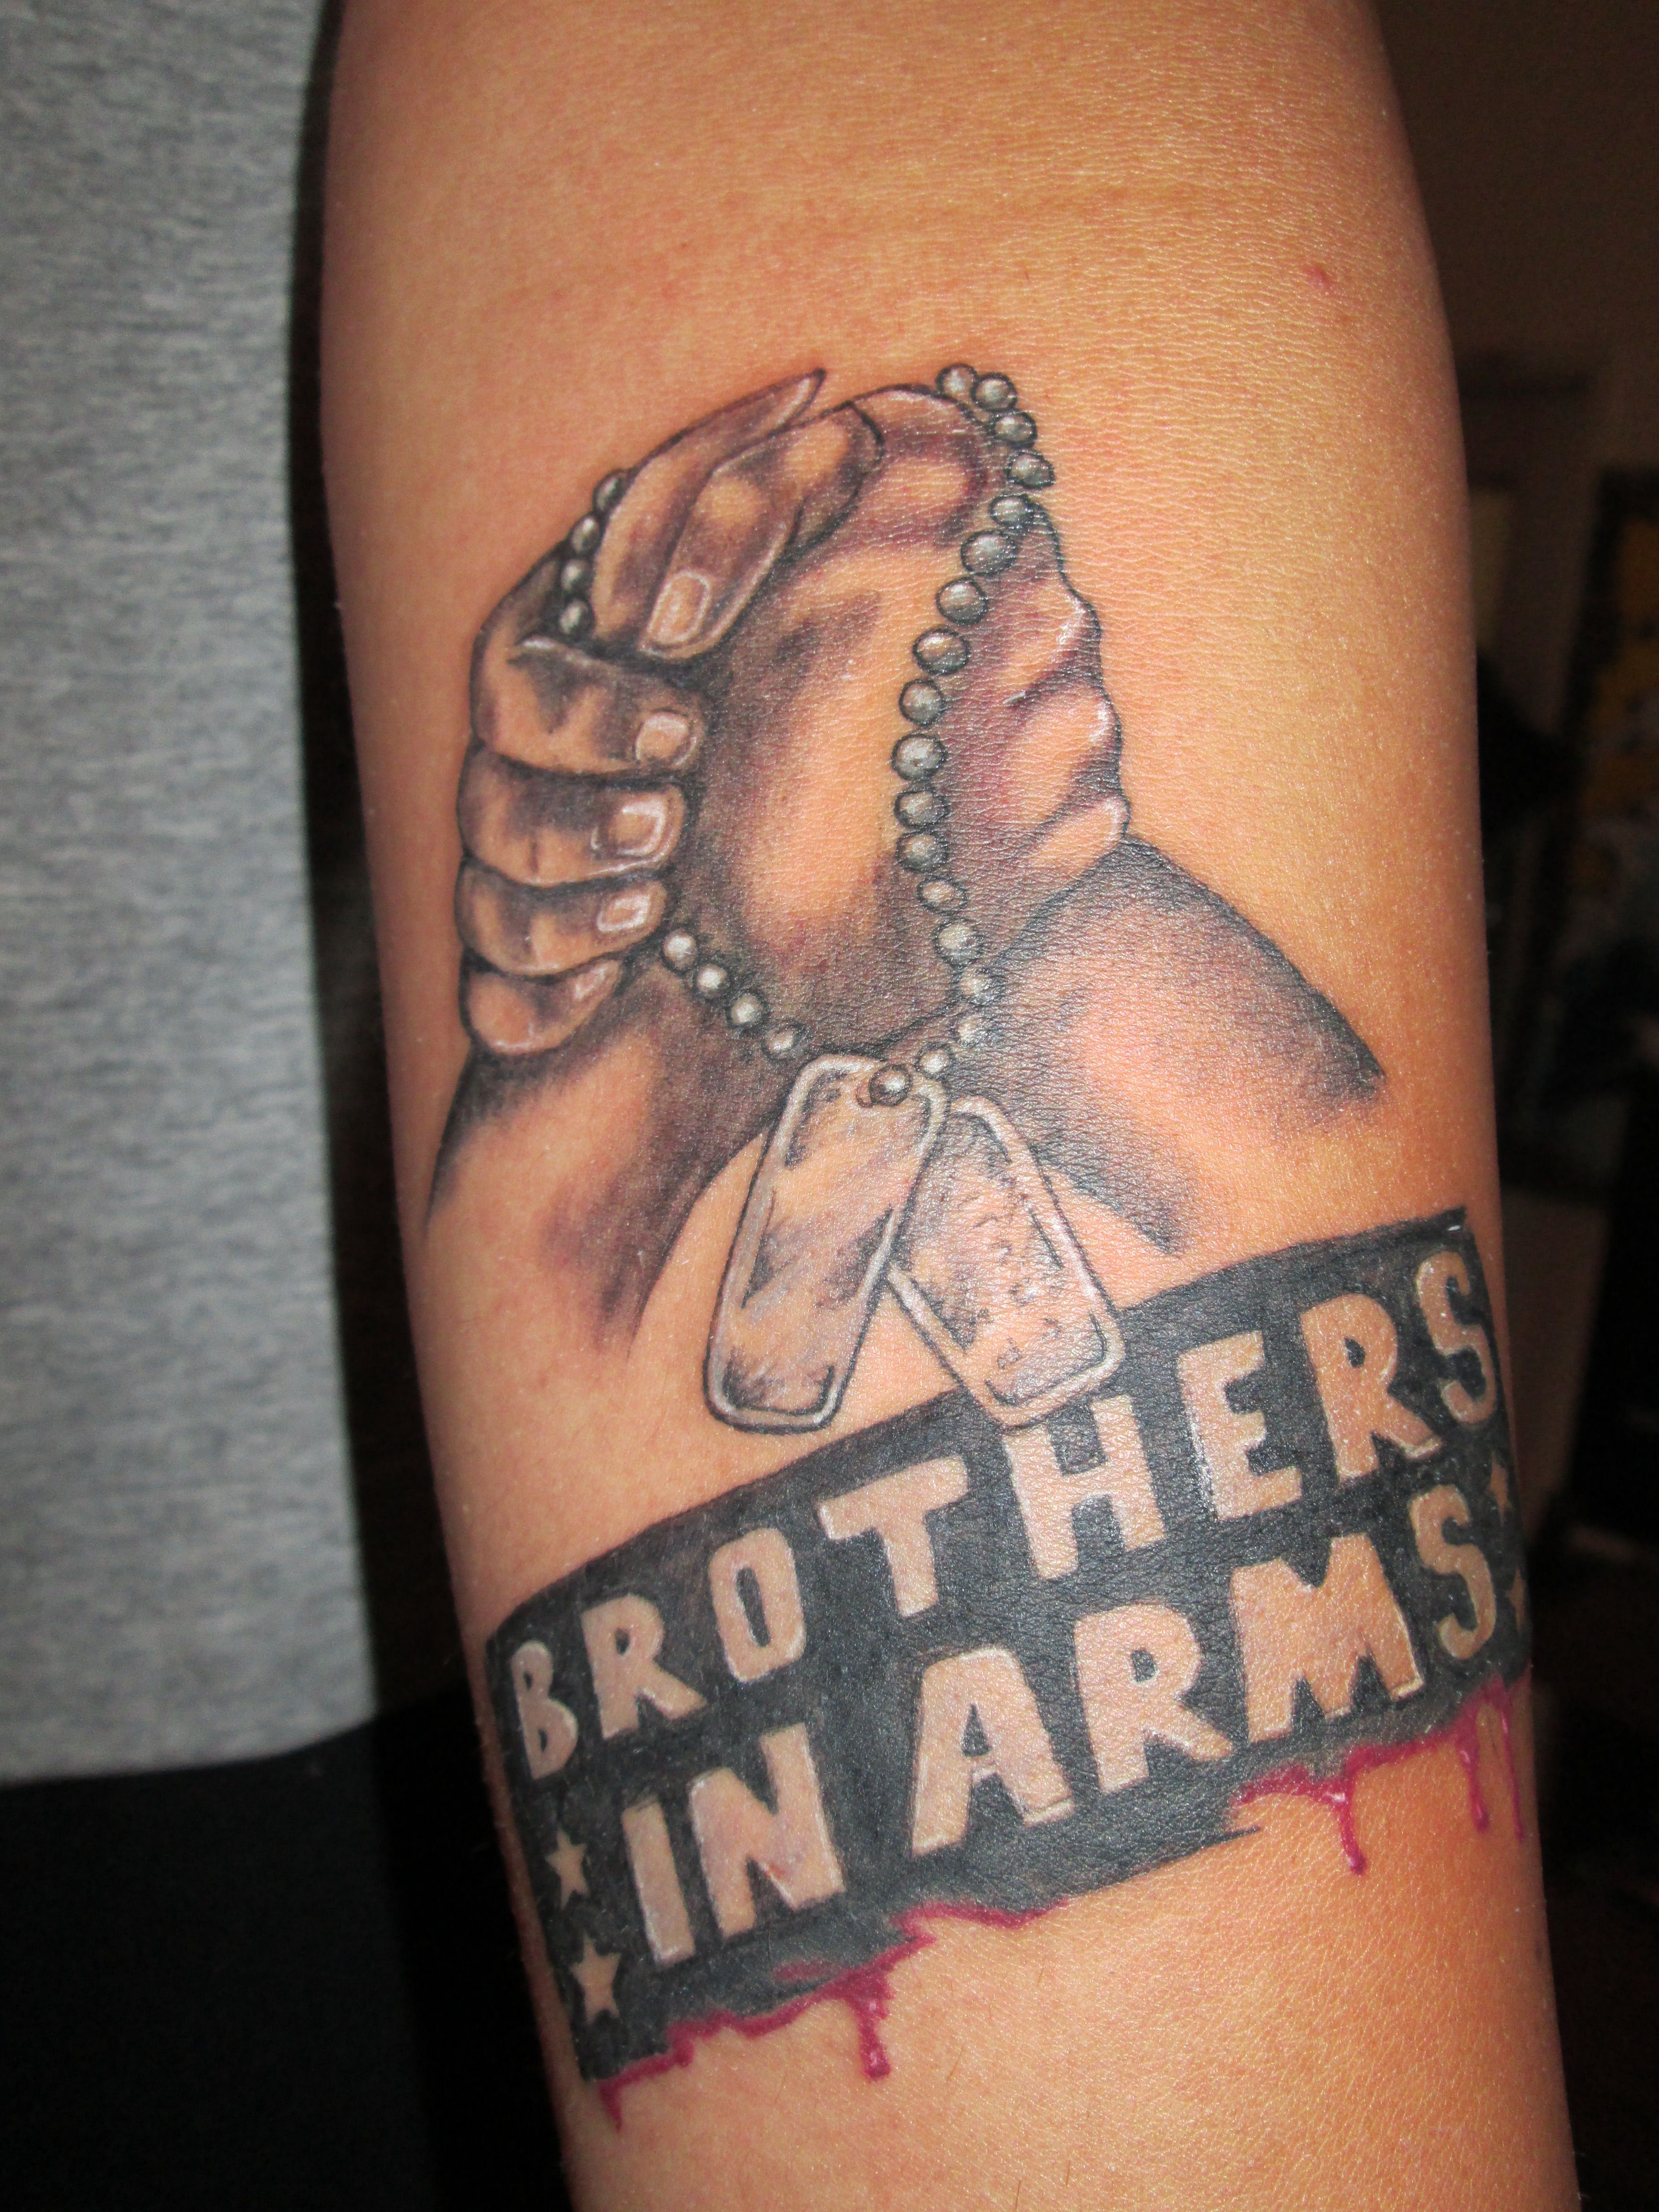 Brothers In Arms Tattoo Tattoos Brothers In Arms Arms